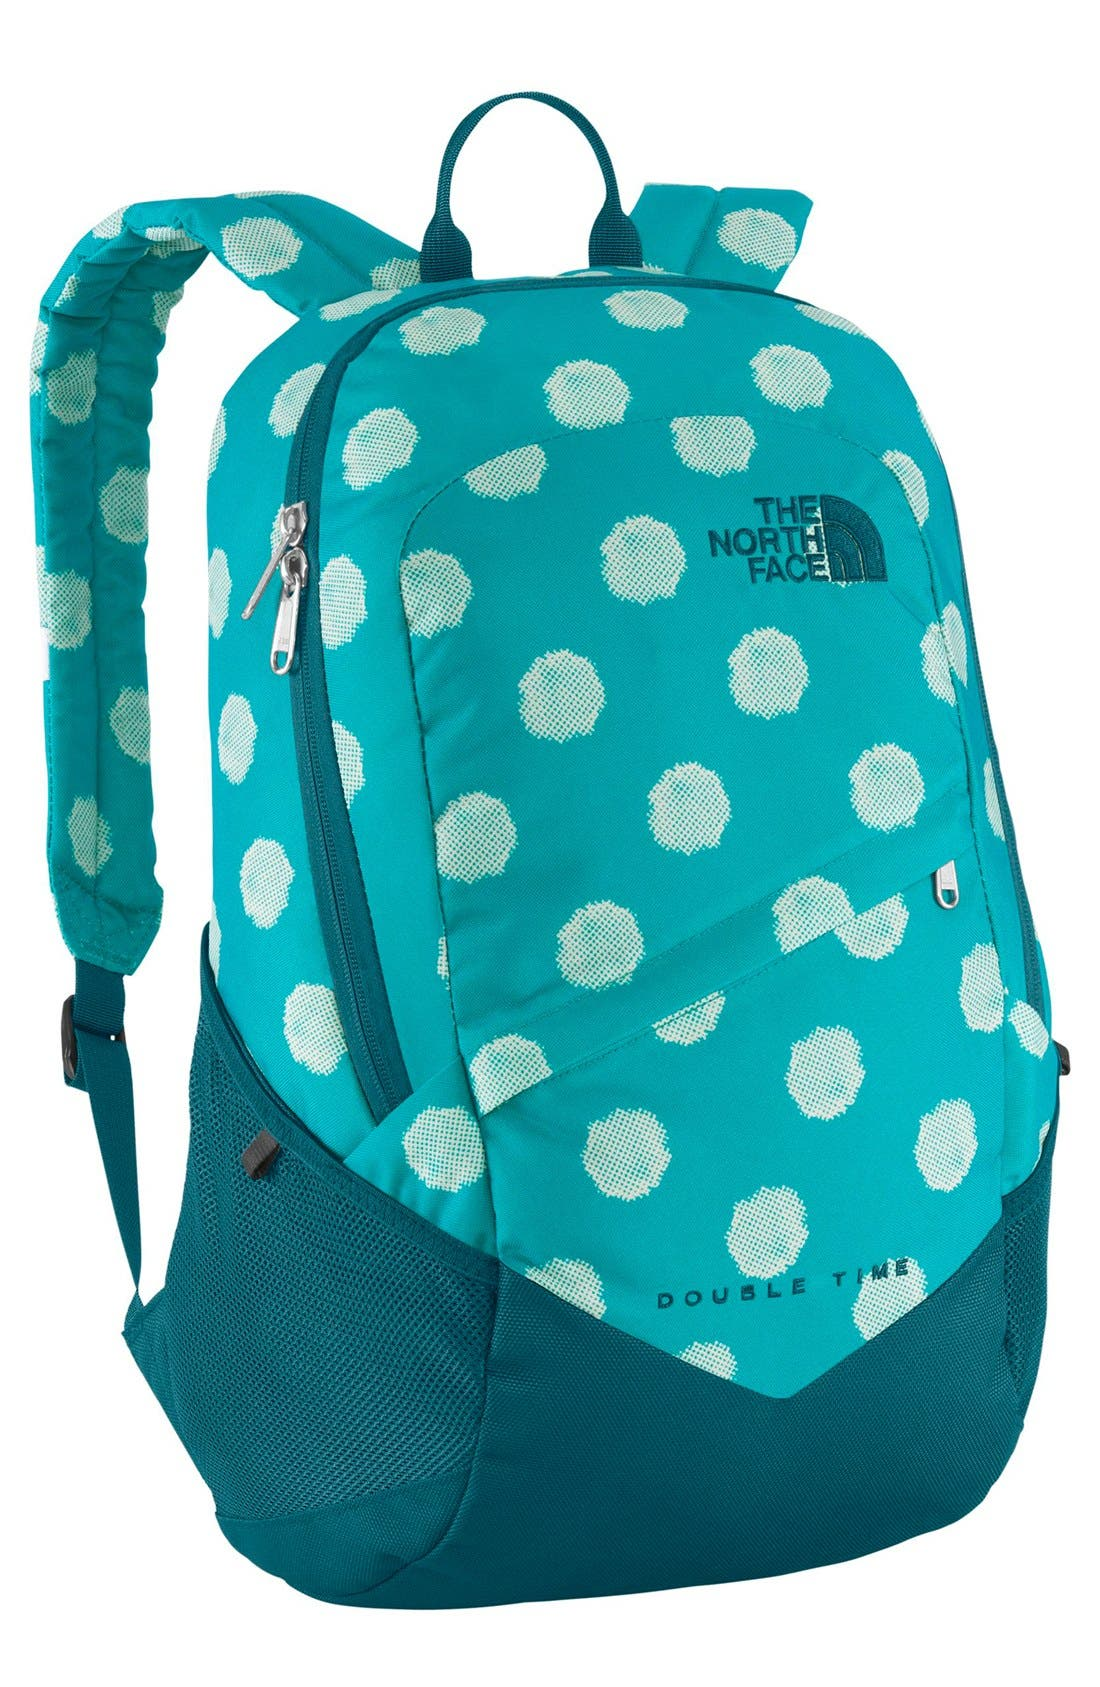 'Double Time' Backpack,                         Main,                         color, 401